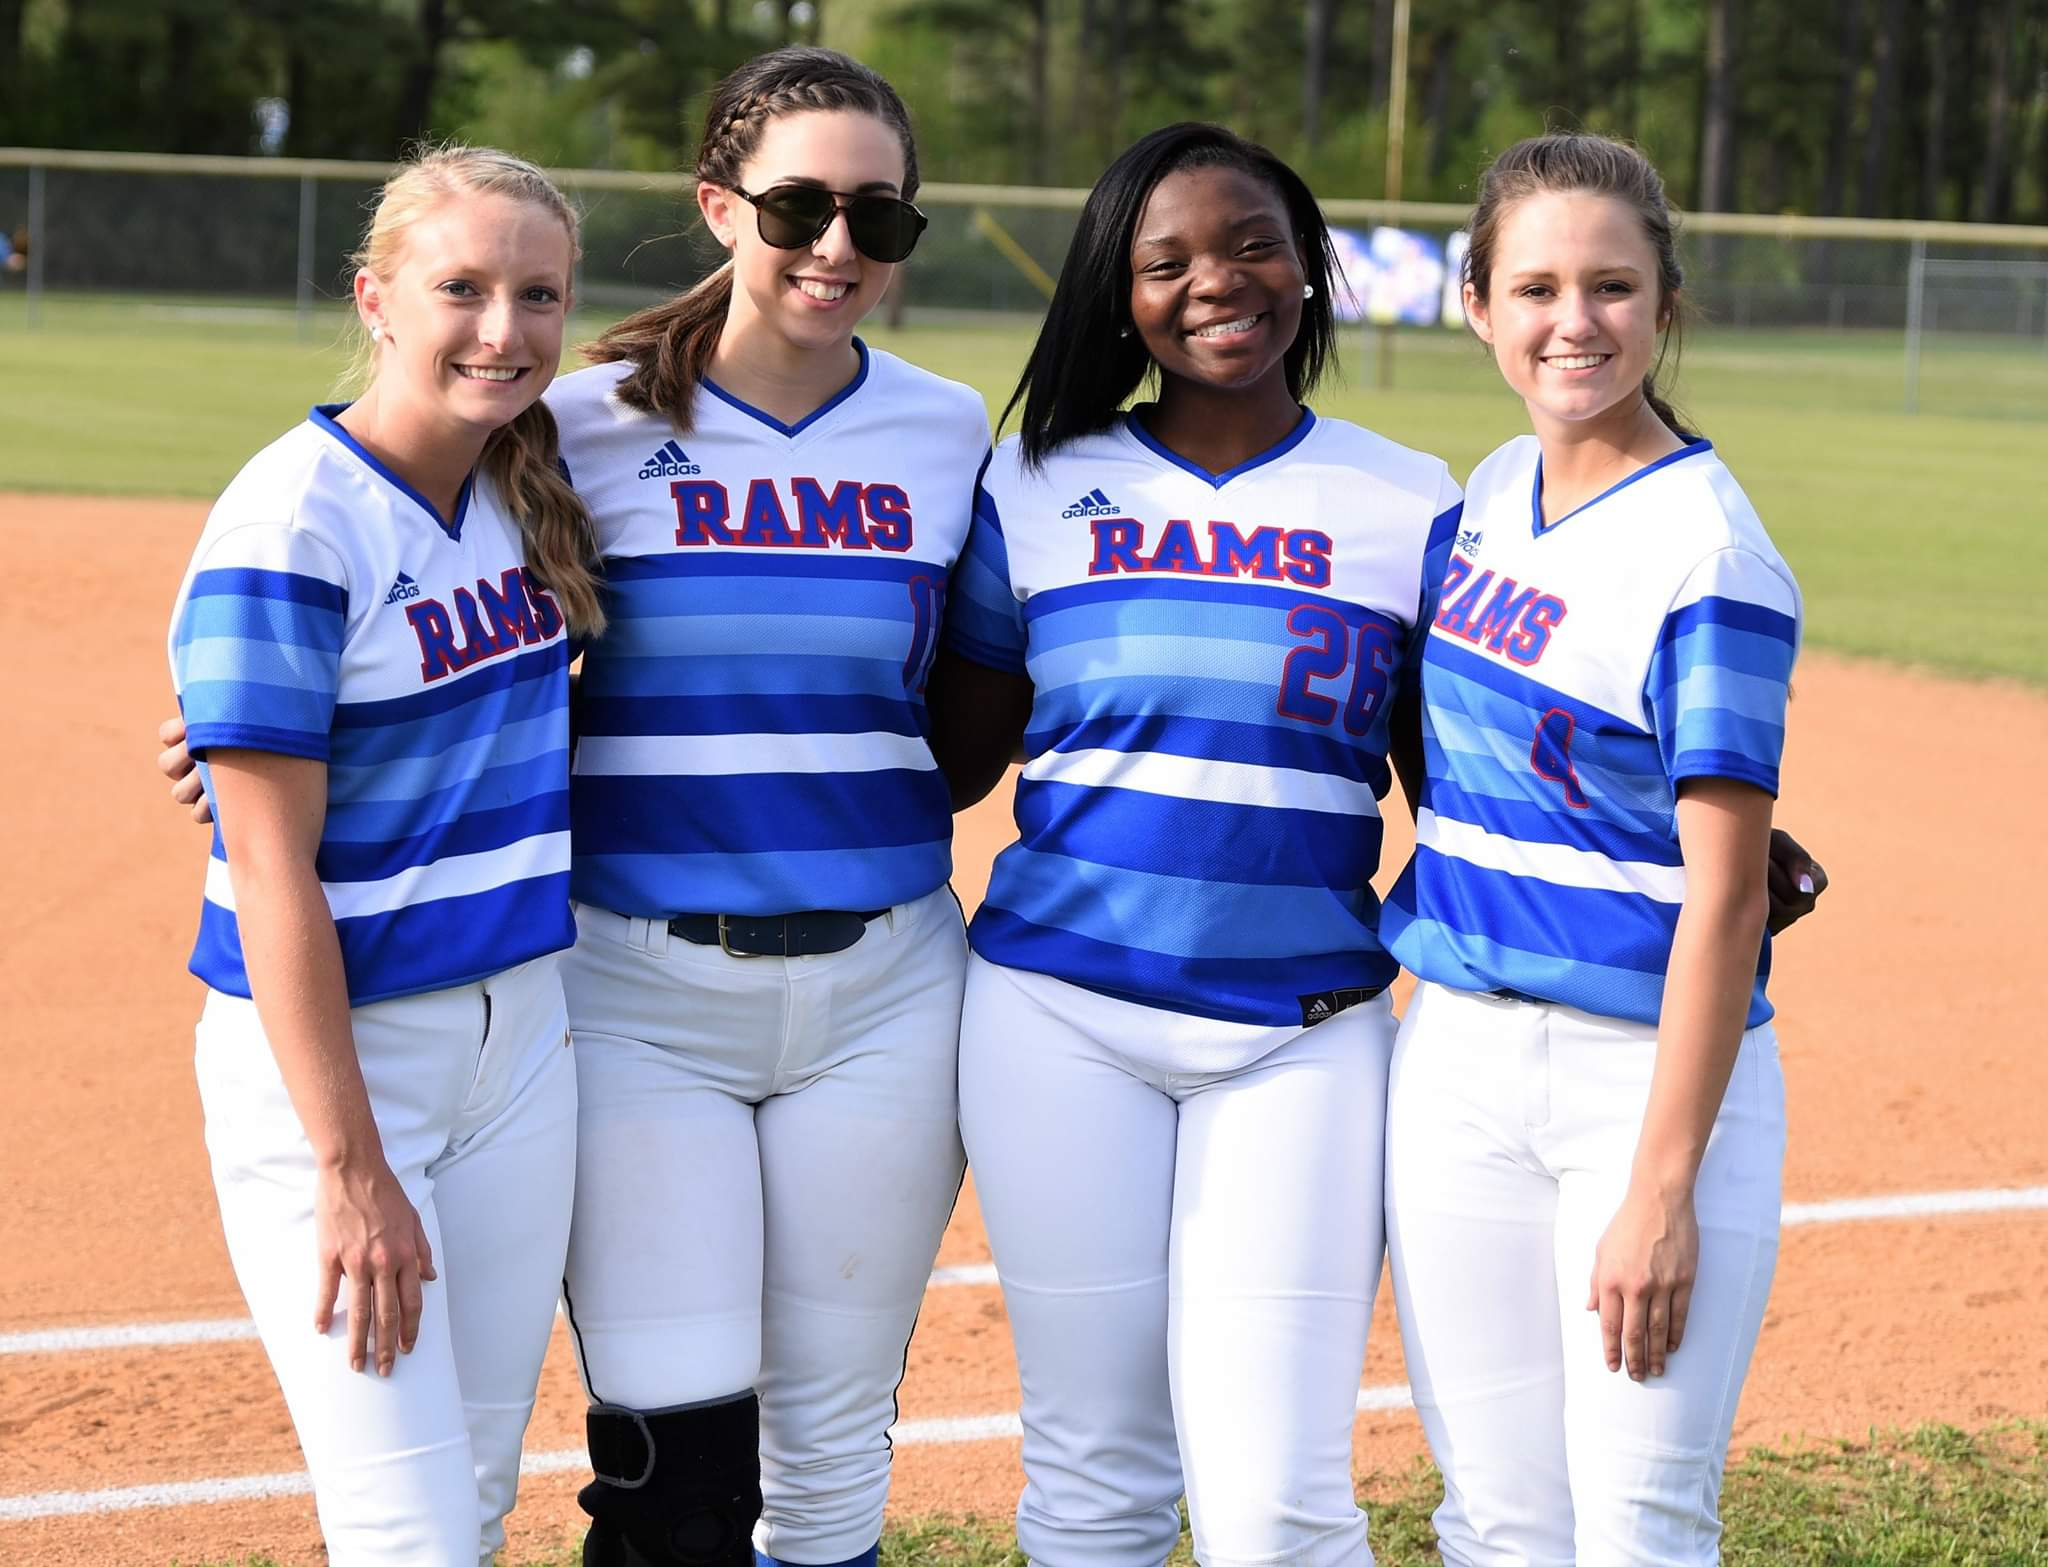 Greene Central's seniors, from left, Katelin Uzzell, Allison Wade, Elexie Sutton and Madison Holloman, have compiled a 65-21 record over the past four years, including a conference championship in 2017. Photo by William 'Bud' Hardy / Neuse News